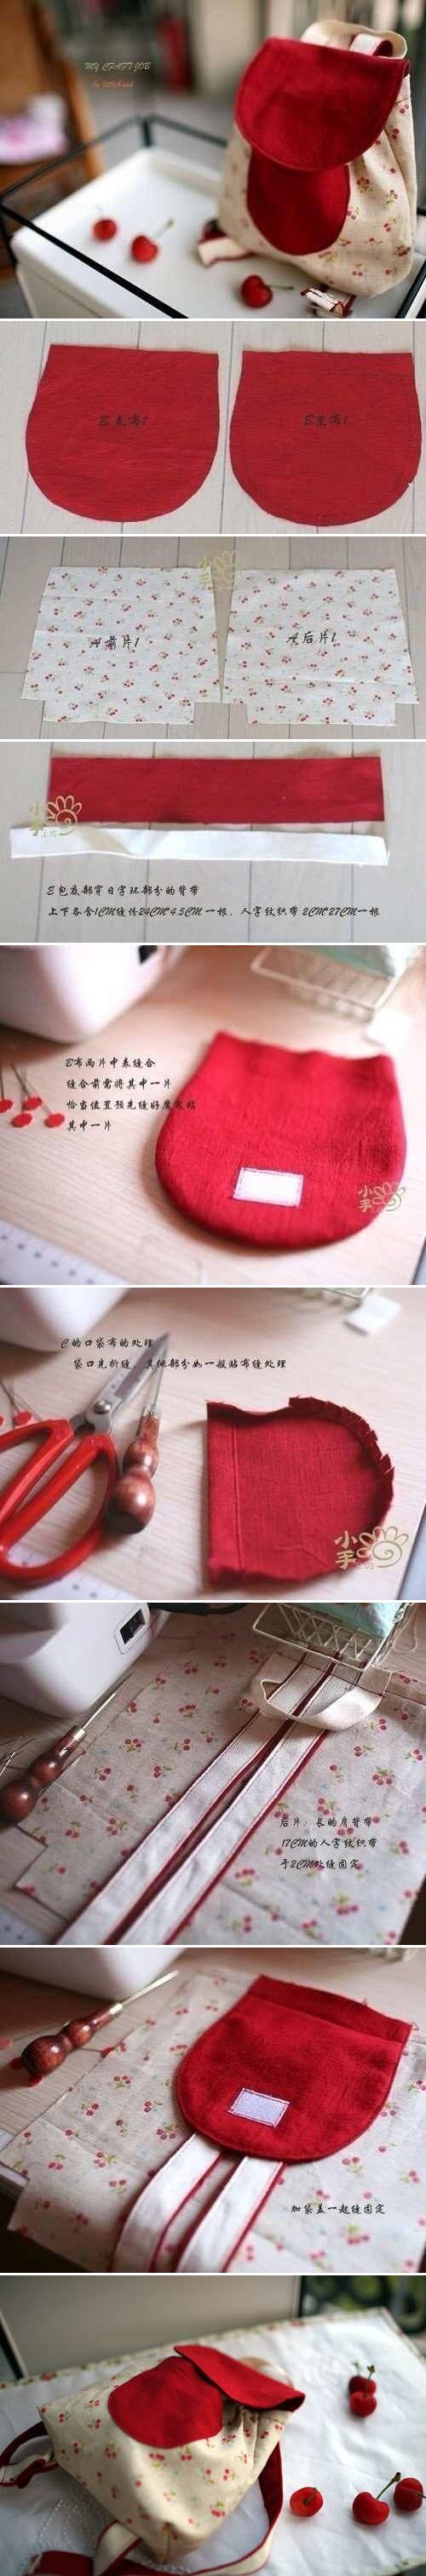 How-To-Make-Cute-Little-Backpack-step-by-step-DIY-tutorial-instructions